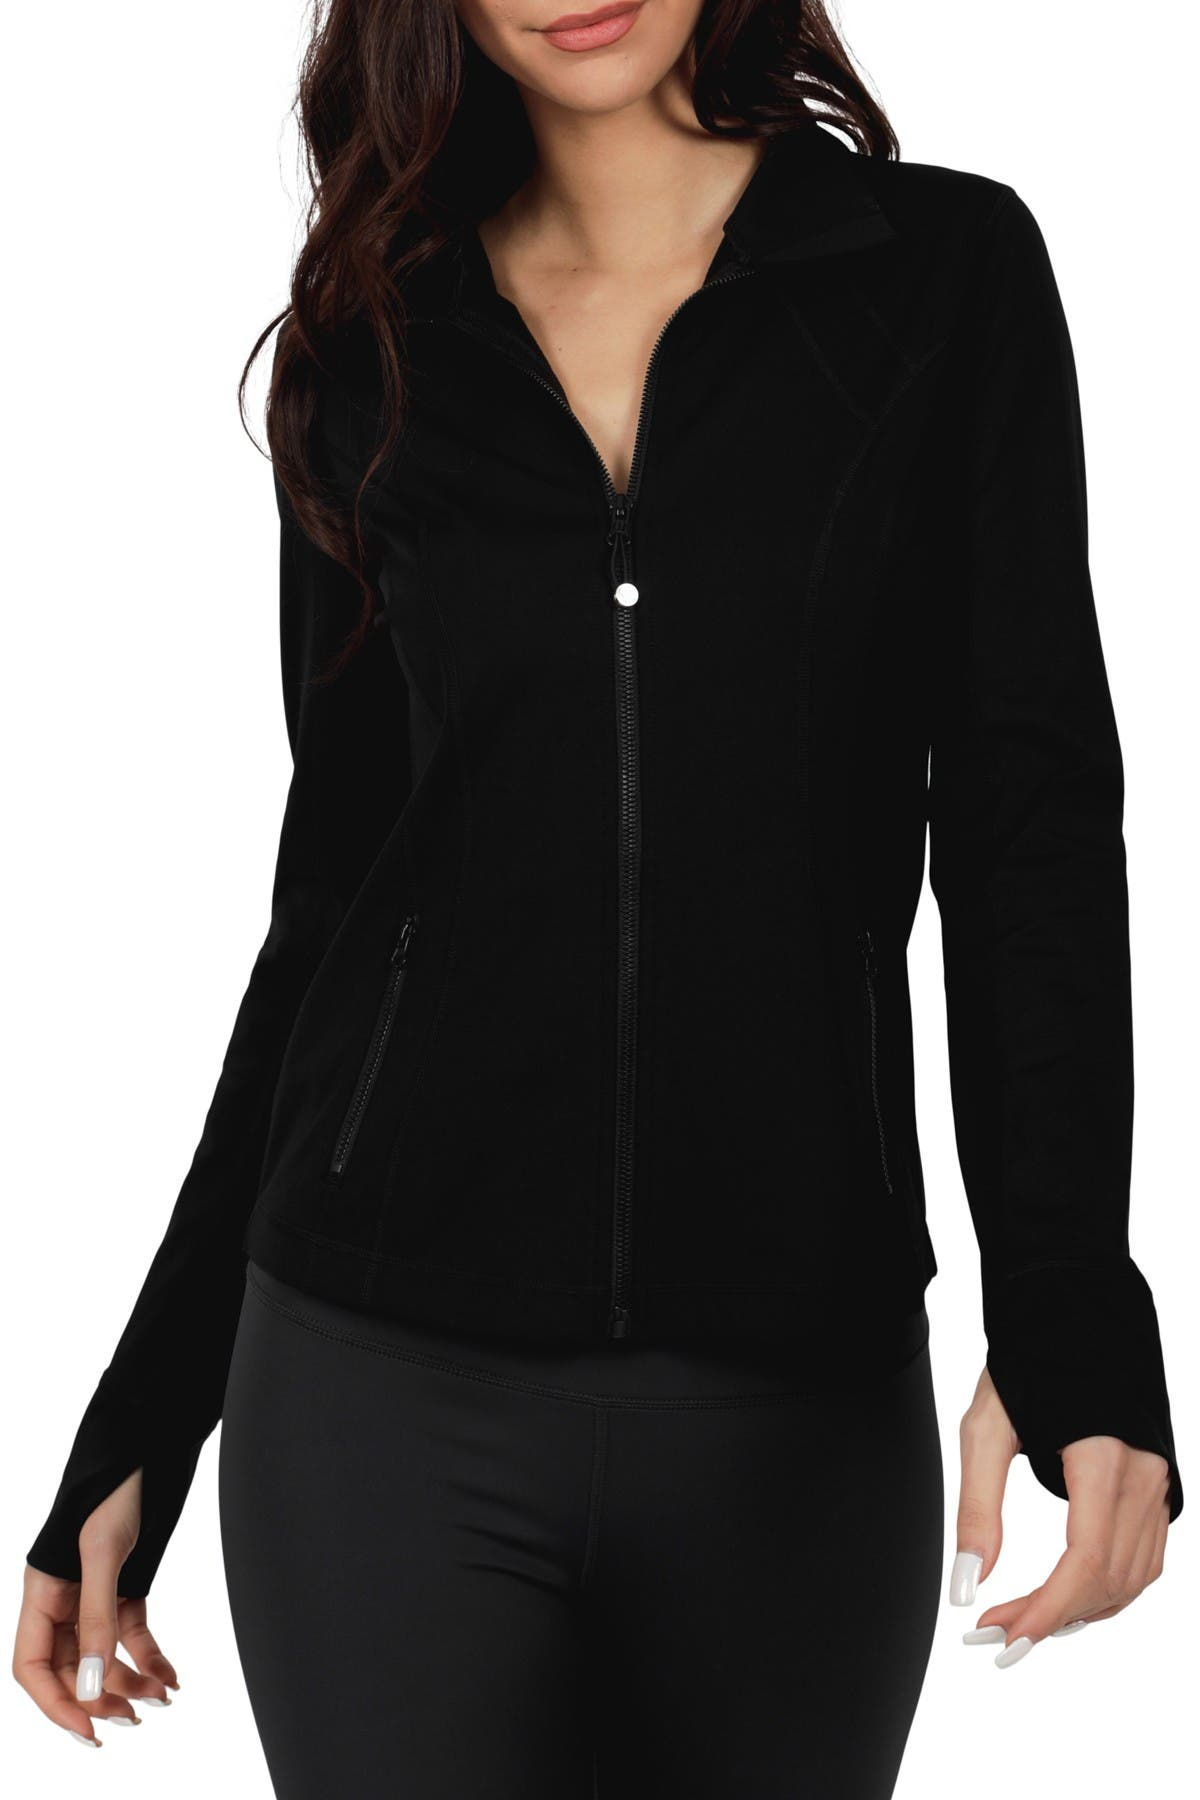 Image of 90 Degree By Reflex Ultralink Fleece Full Zip Jacket